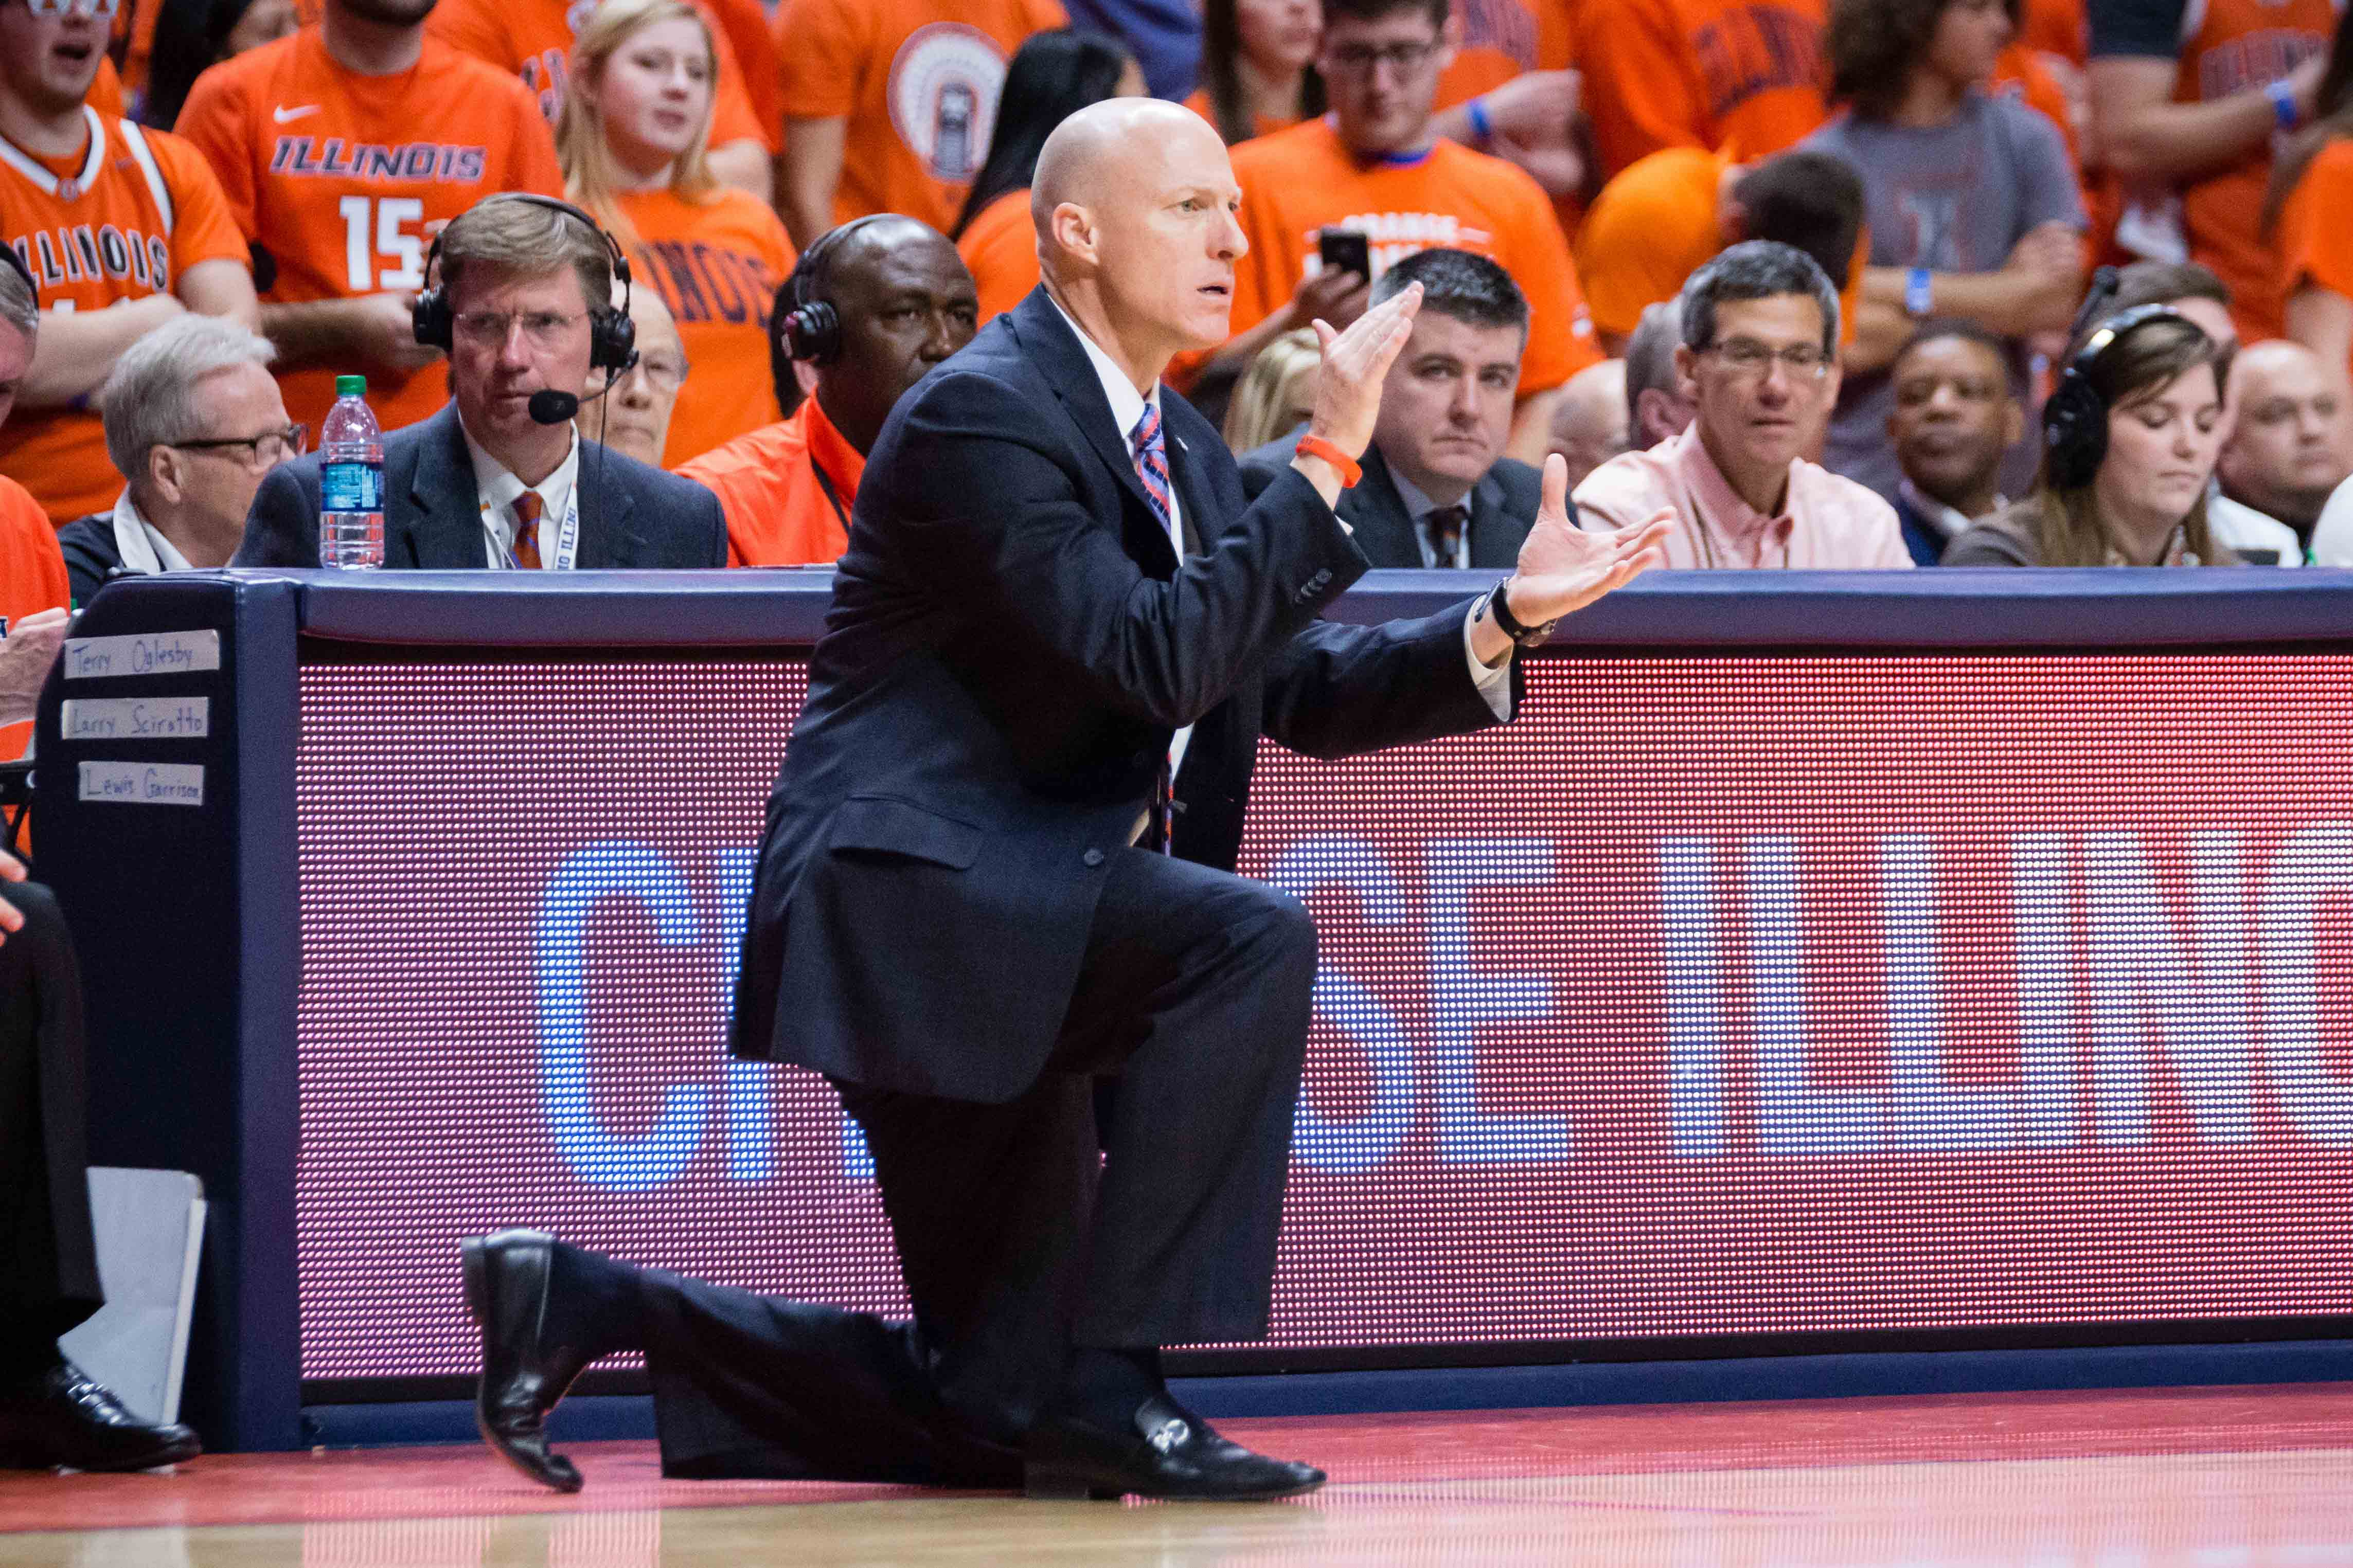 Illinois head coach John Groce claps for his team during the game against Penn State at State Farm Center on Saturday, February 11. The Illini lost 83-70.